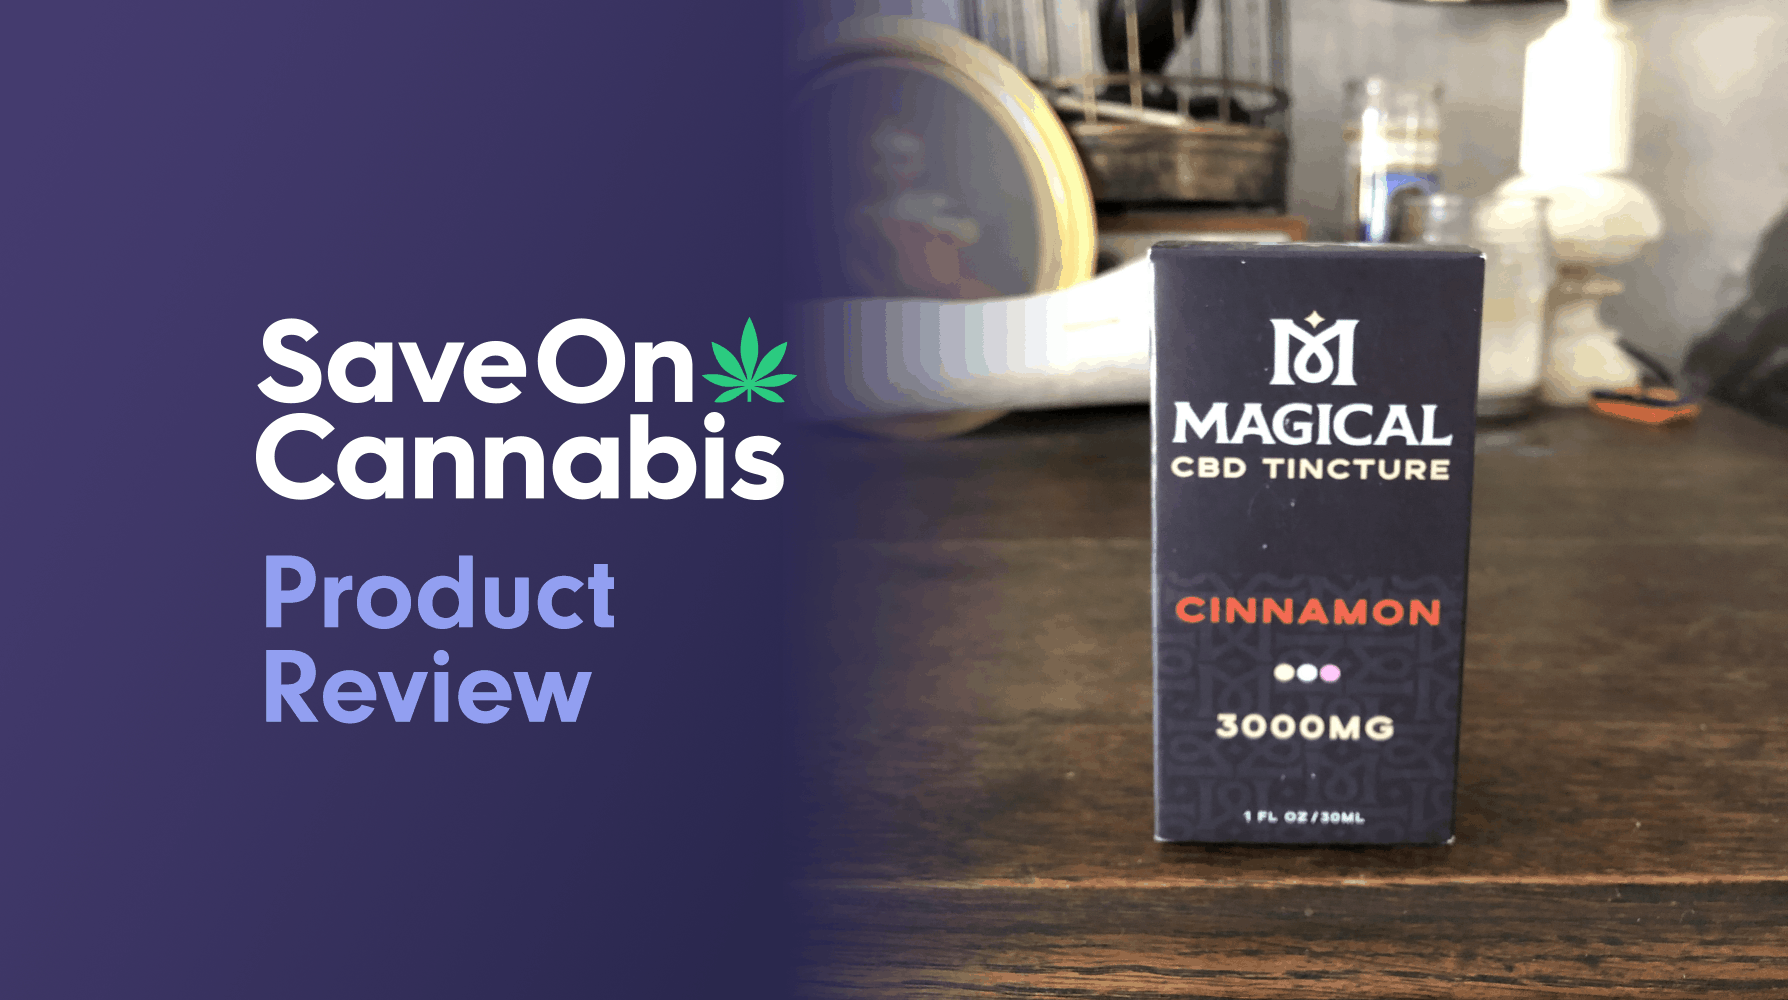 Magical CBD Tincture Cinnamon 3000 mg Review Save On Cannabis Review Website